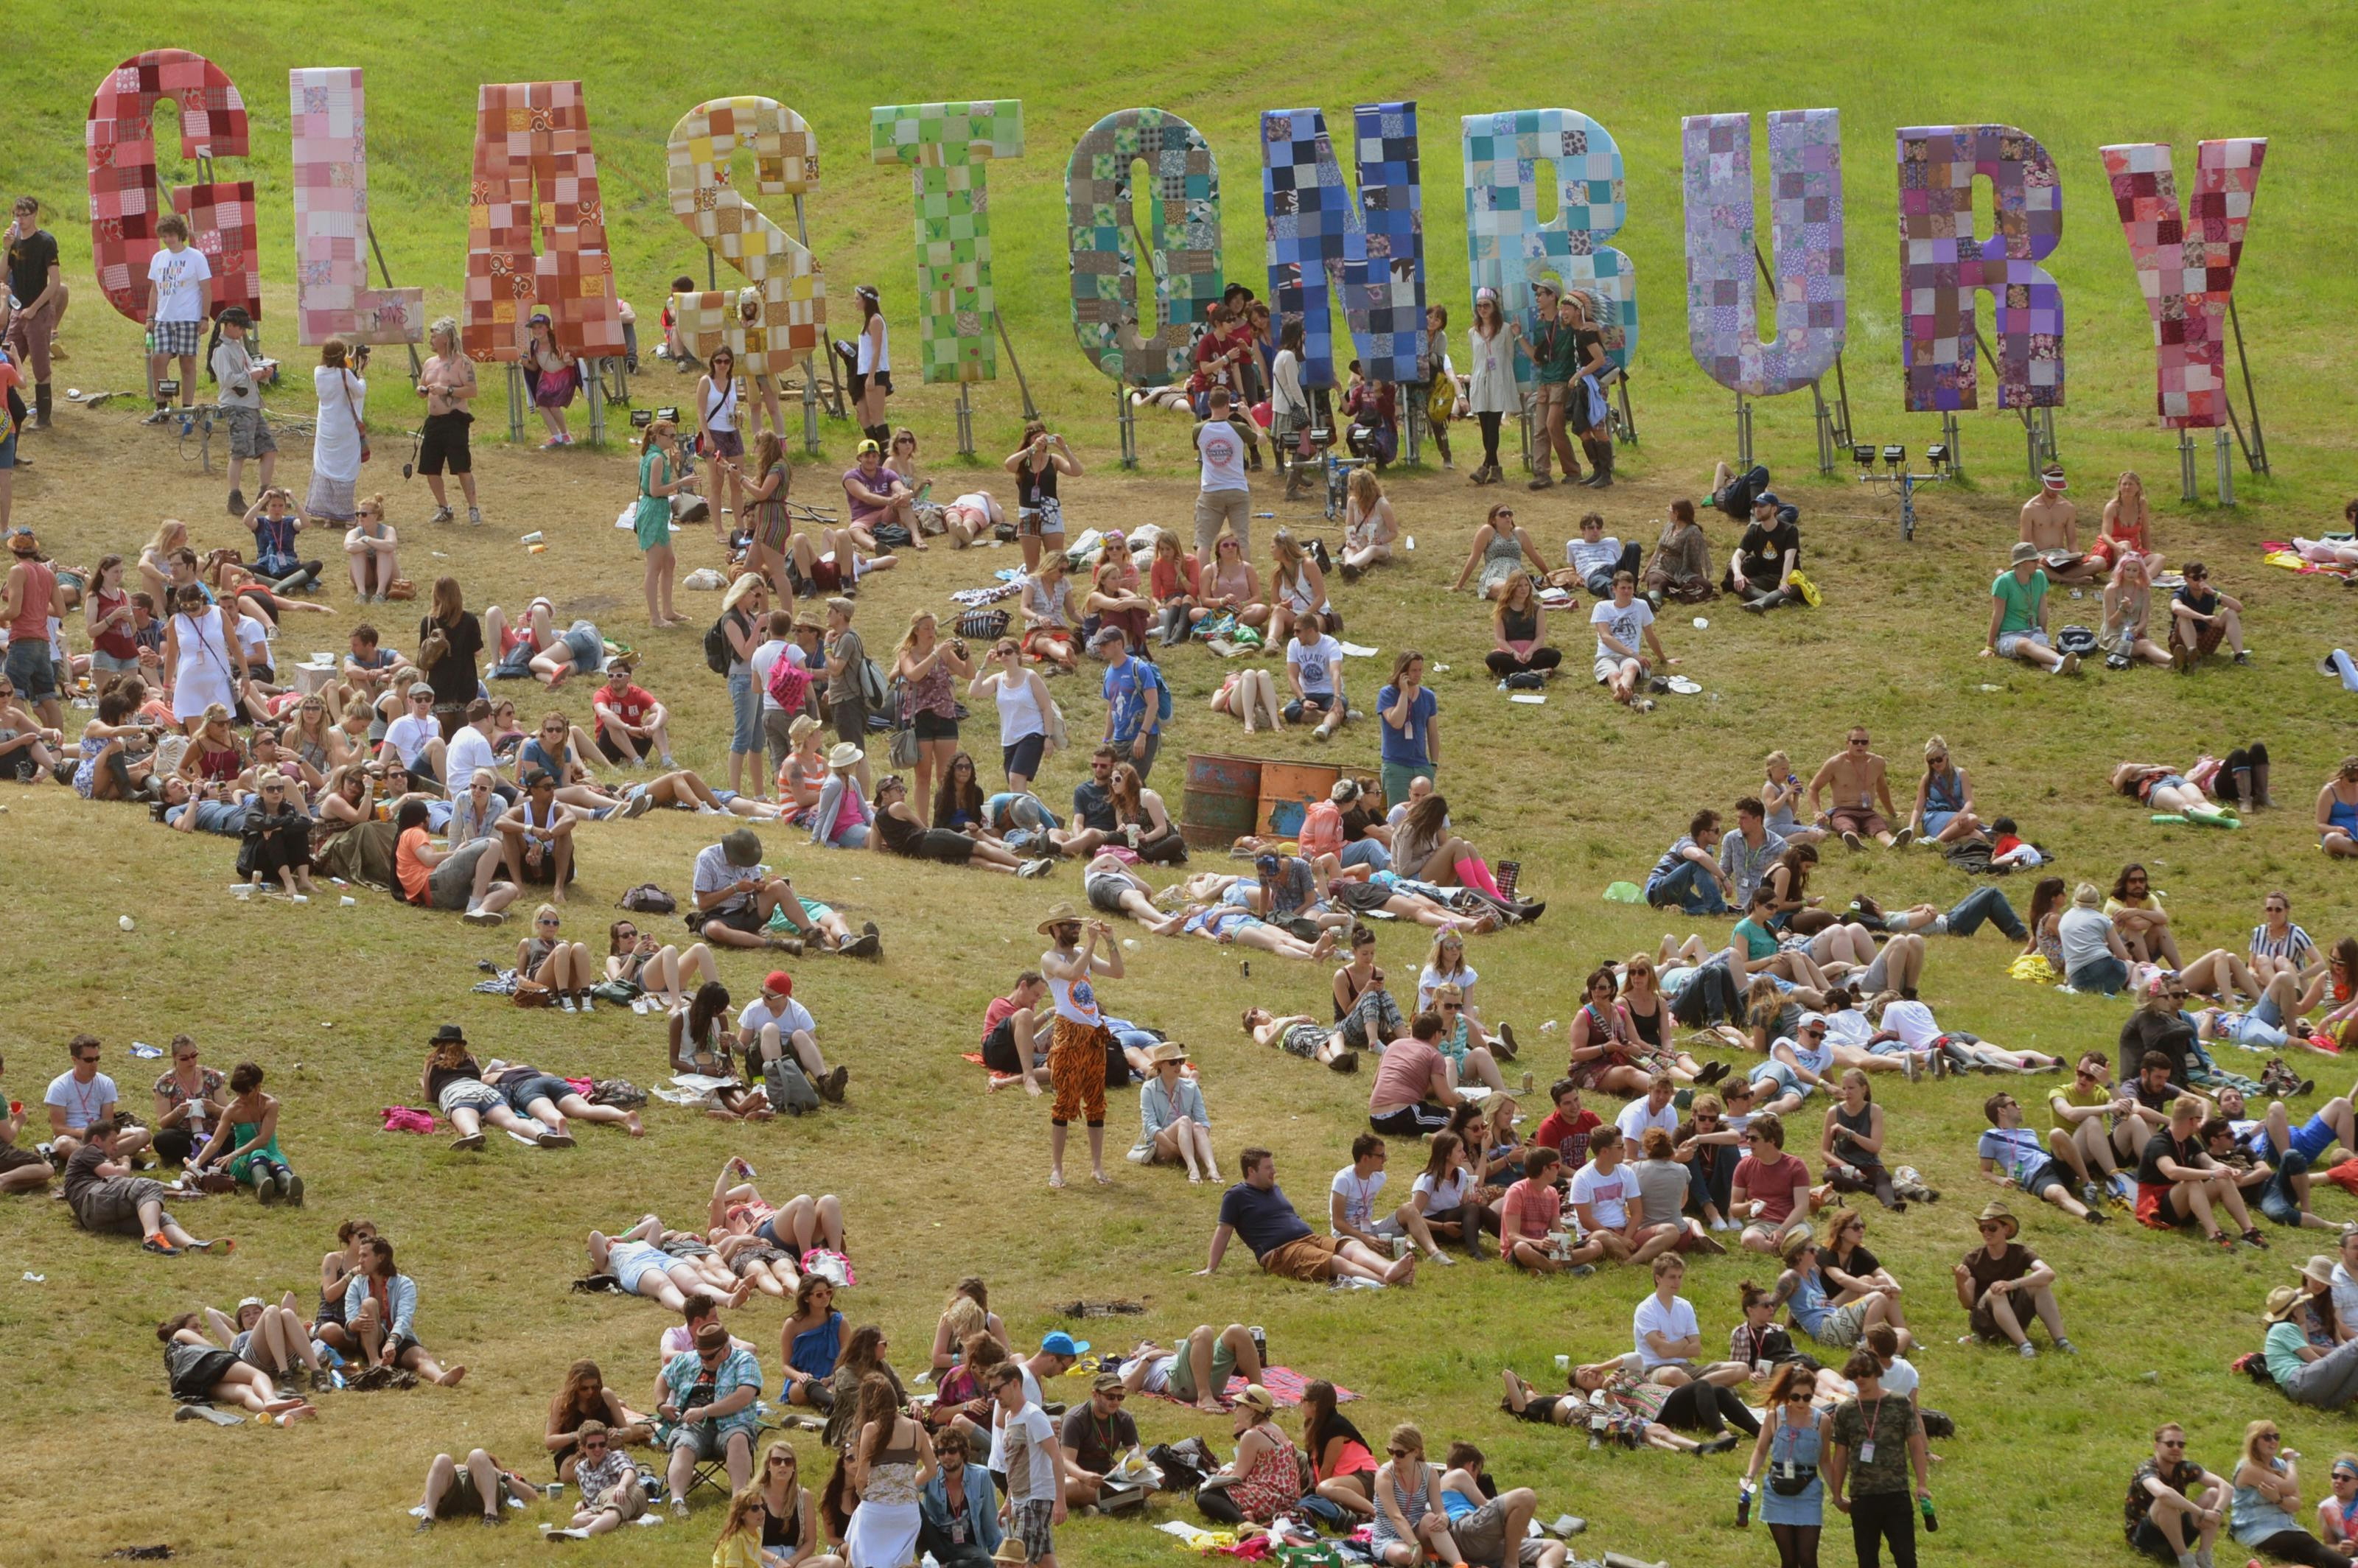 Glastonbury 2017 expected to be mostly dry as promising weather forecast appears to rule out repeat of last year's mudbath